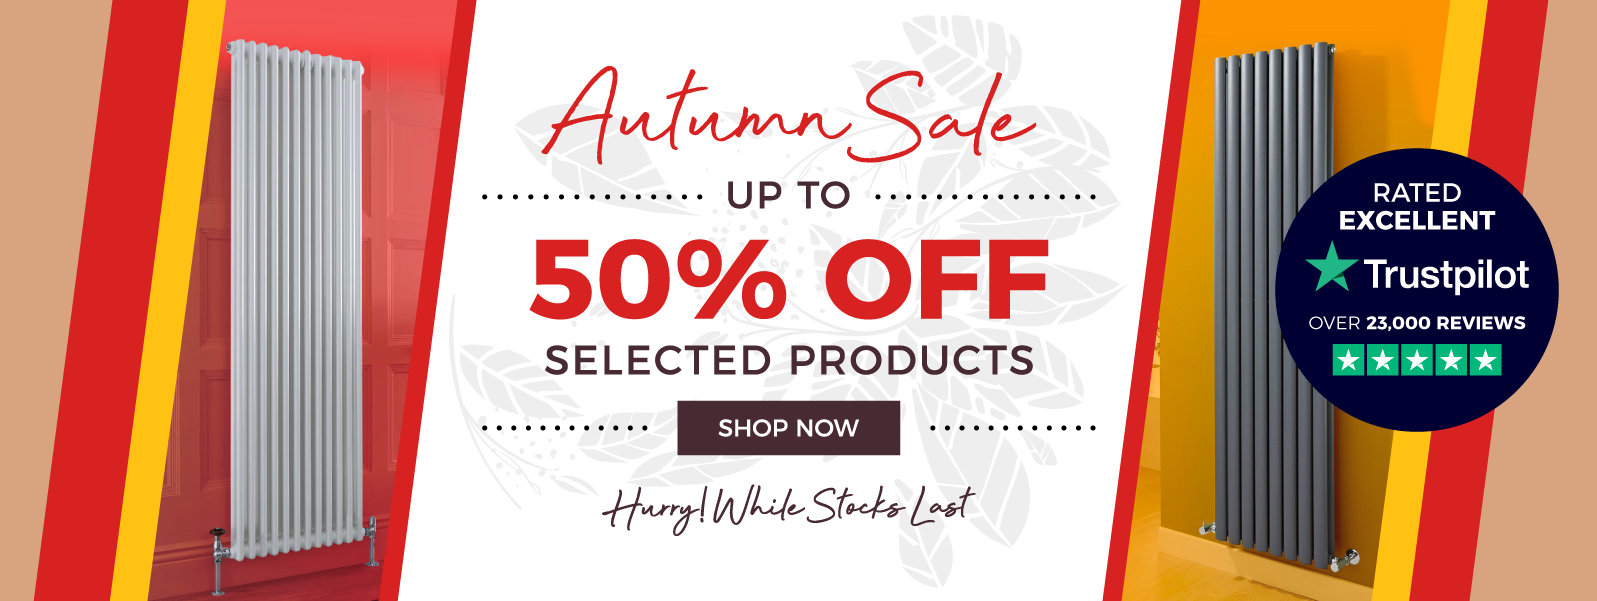 Autumn Sale - Up to 50% Off Selected Products - Hurry While Stocks Last